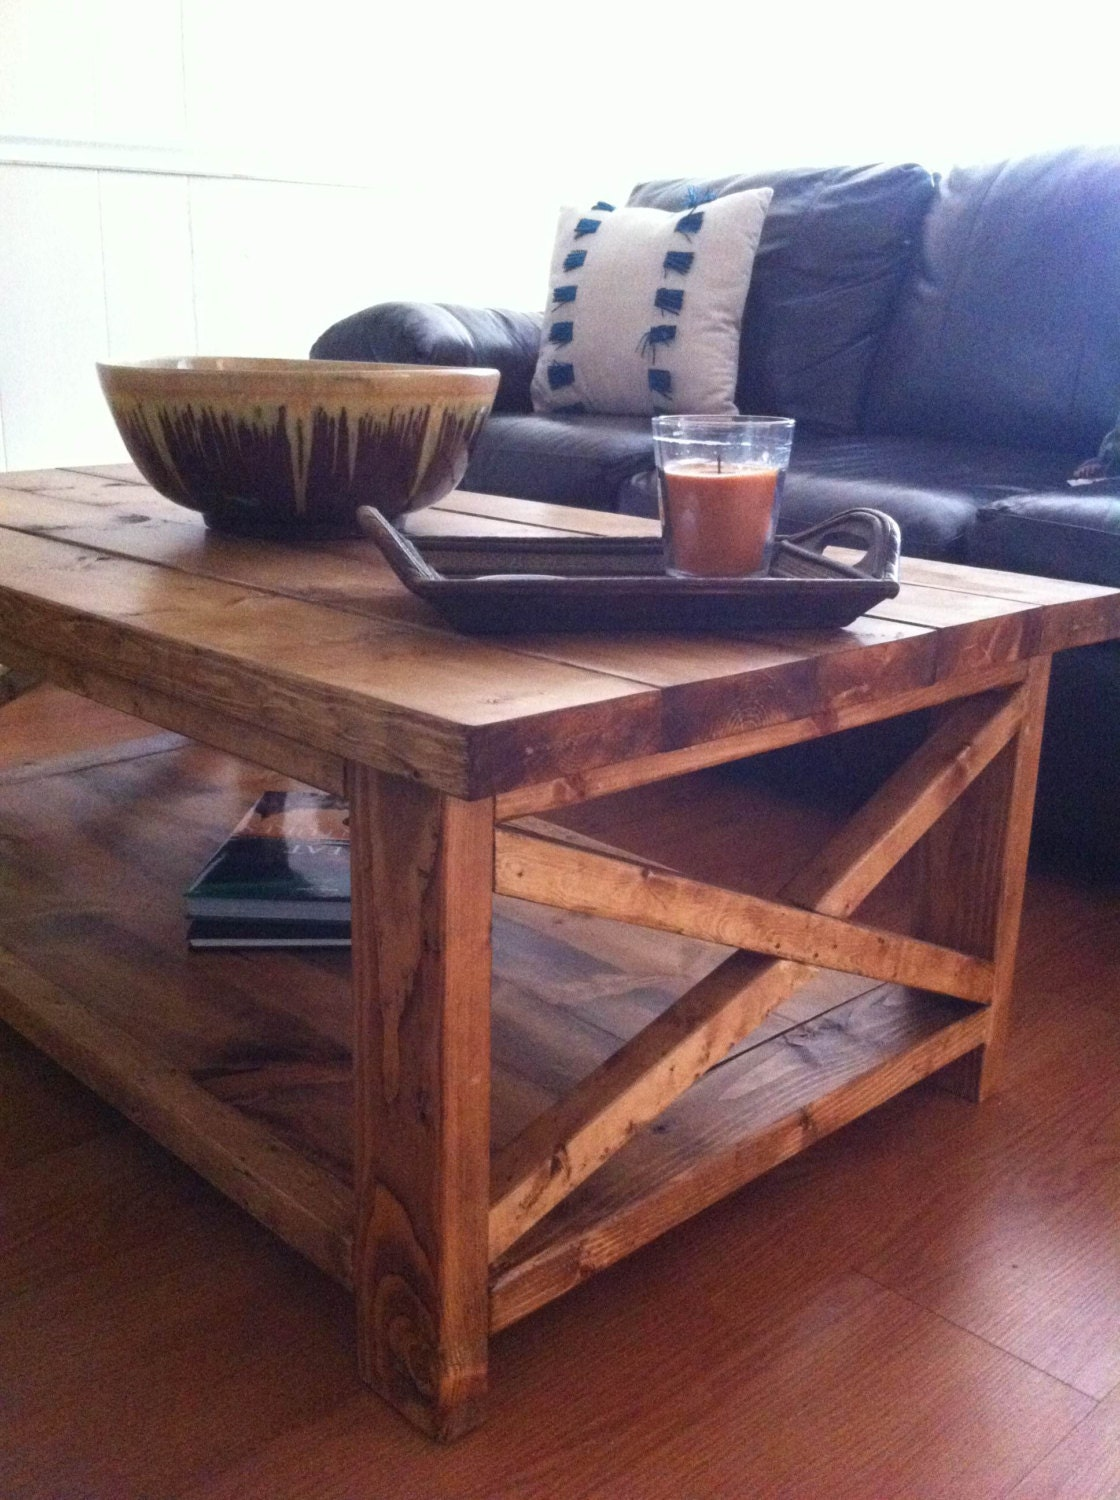 Handmade rustic x wood farmhouse coffee table Unique rustic coffee tables